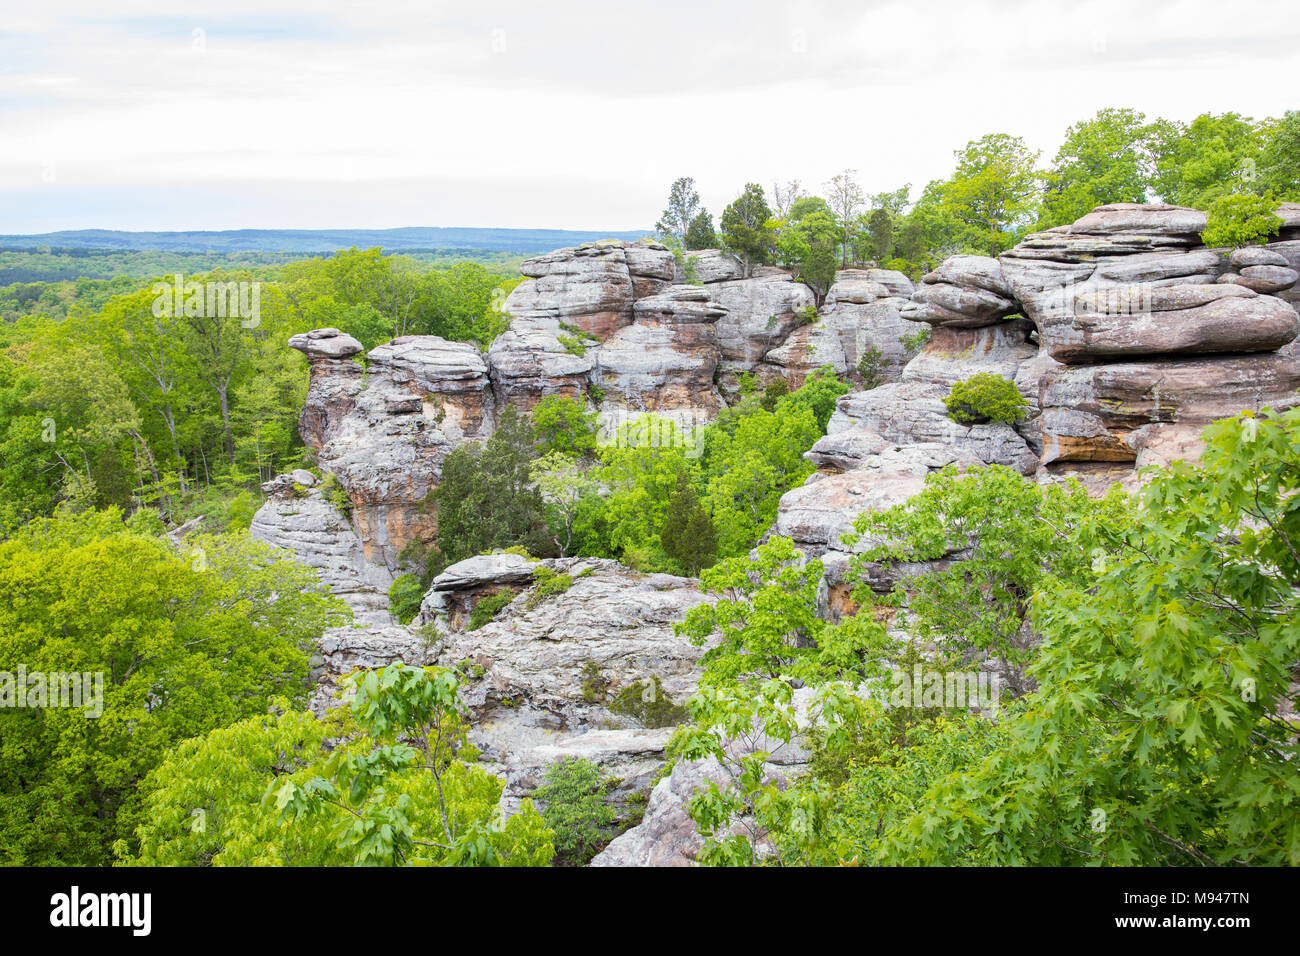 63895-14807 Camel Rock, Garden of the Gods Recreation Area Shawnee National Forest Saline Co. IL - Stock Image